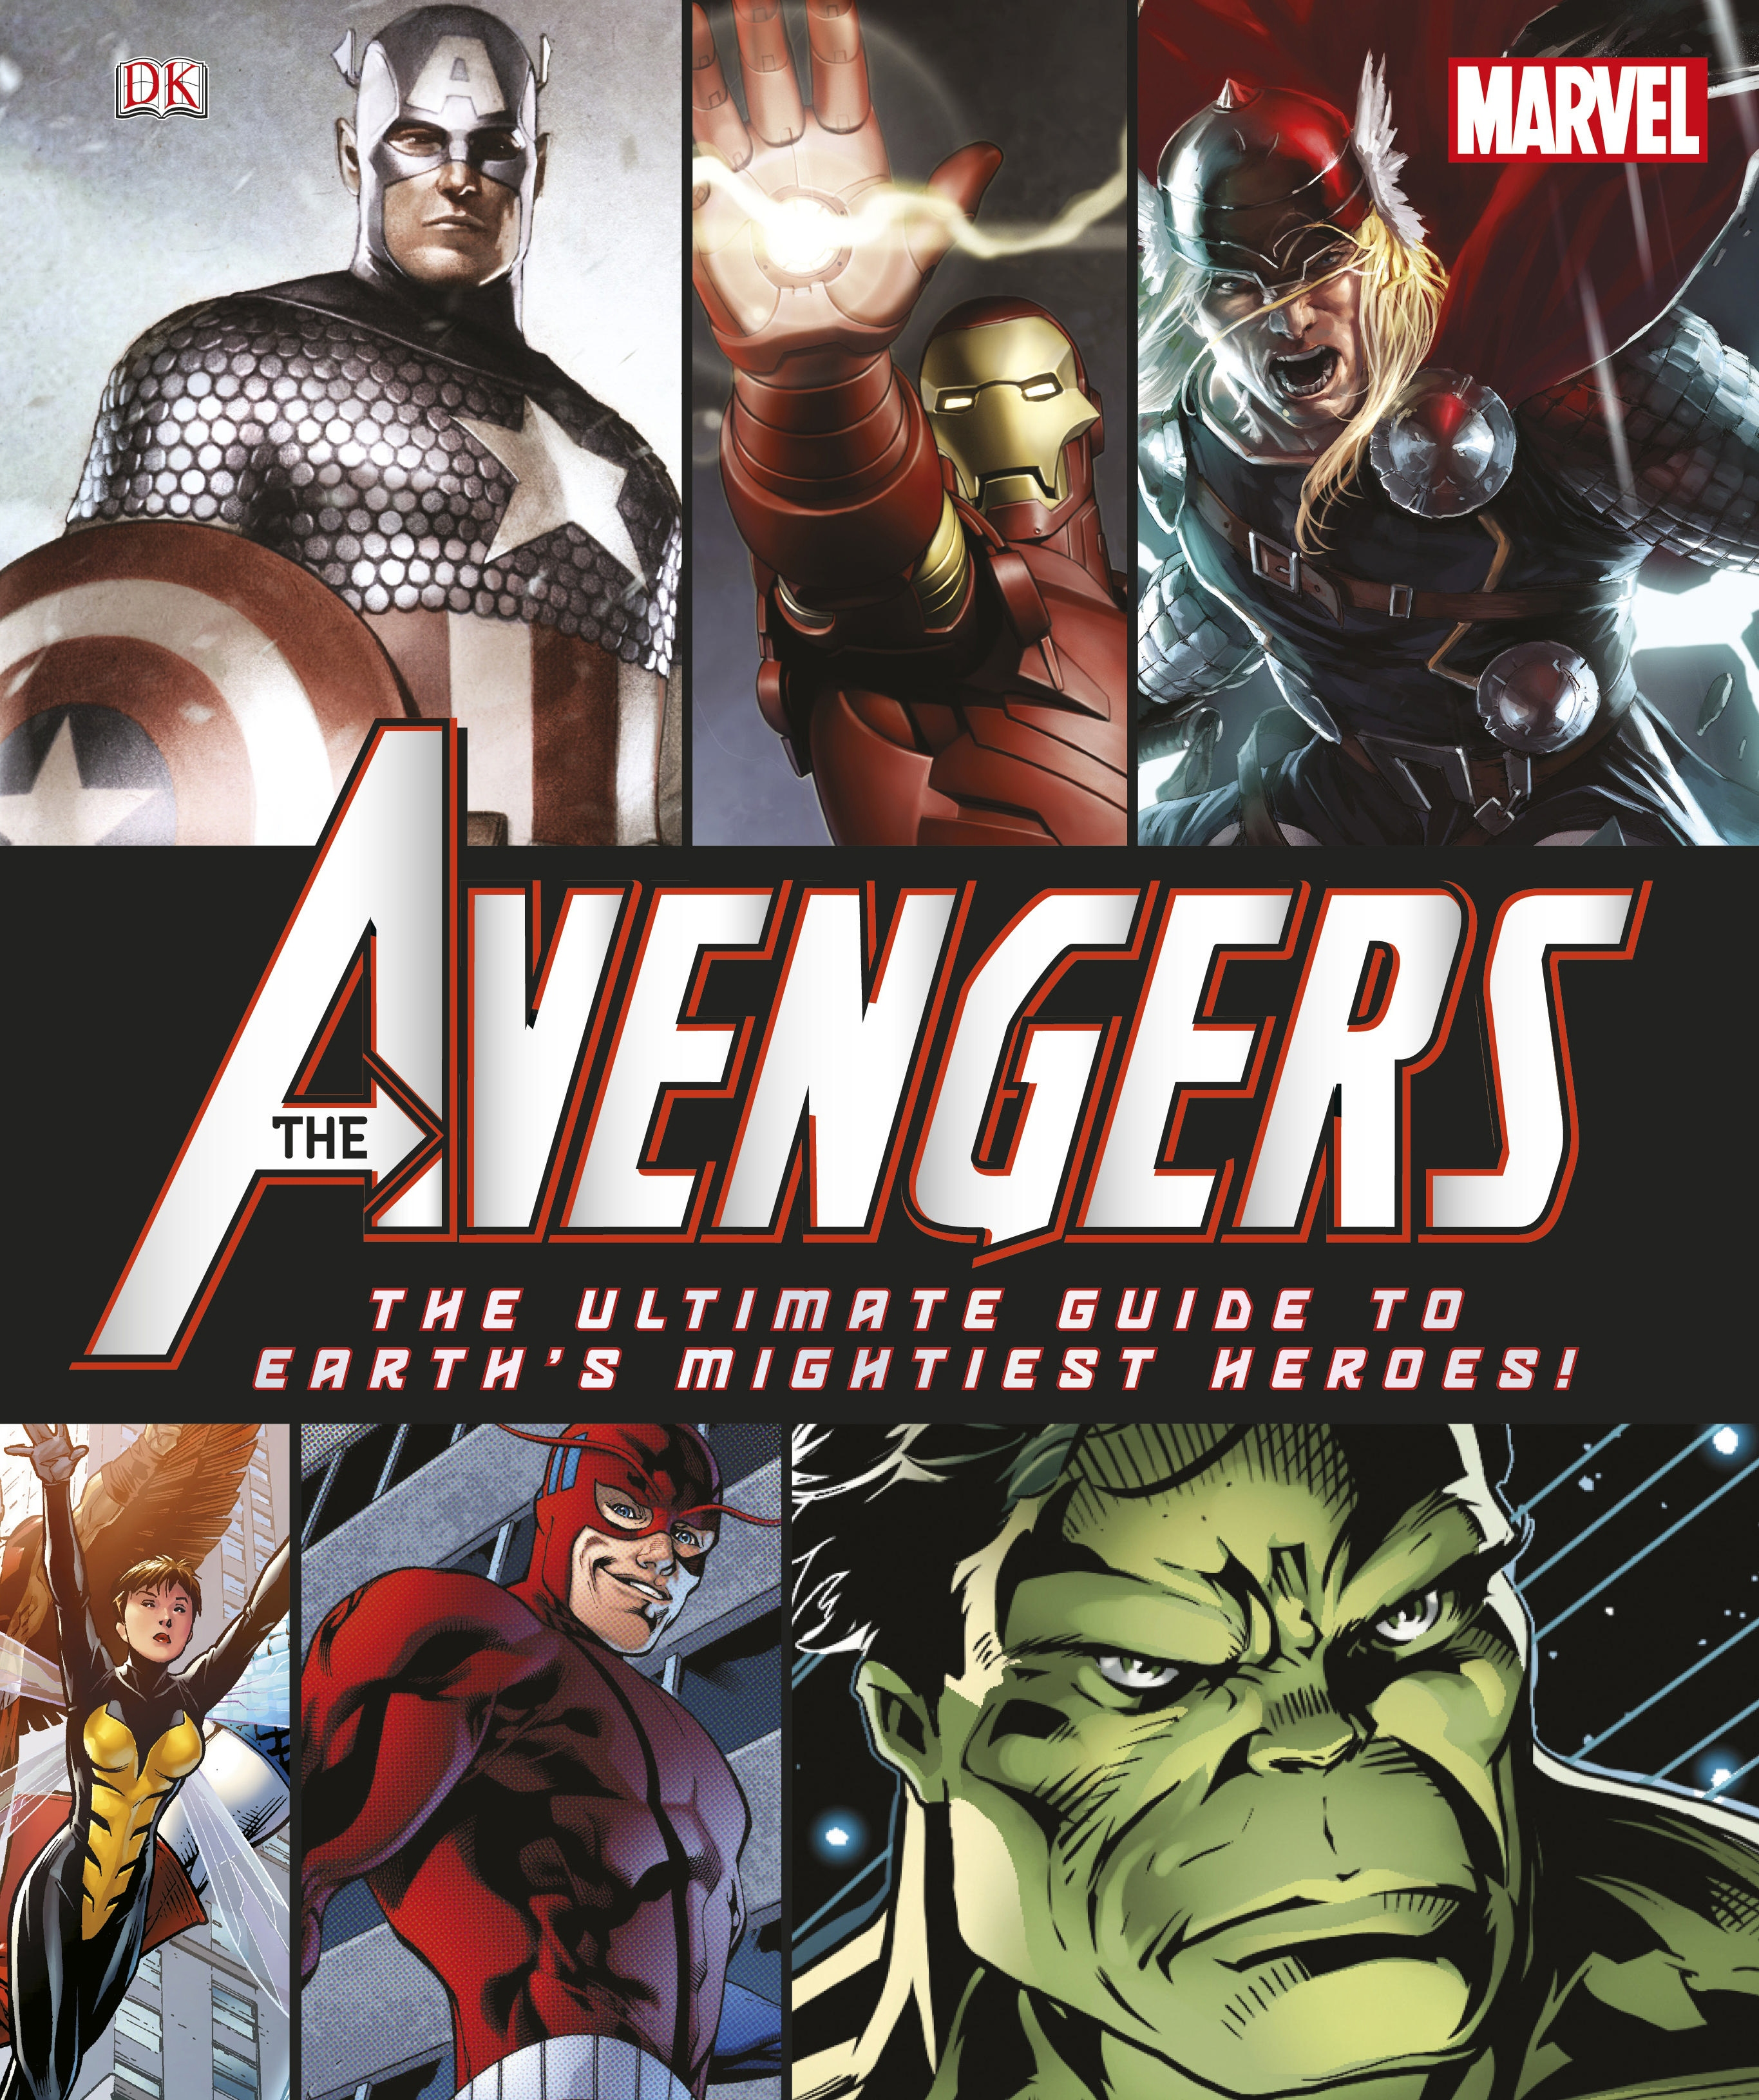 Marvel Avengers: The Ultimate Guide To Earth's Mightiest Heroes